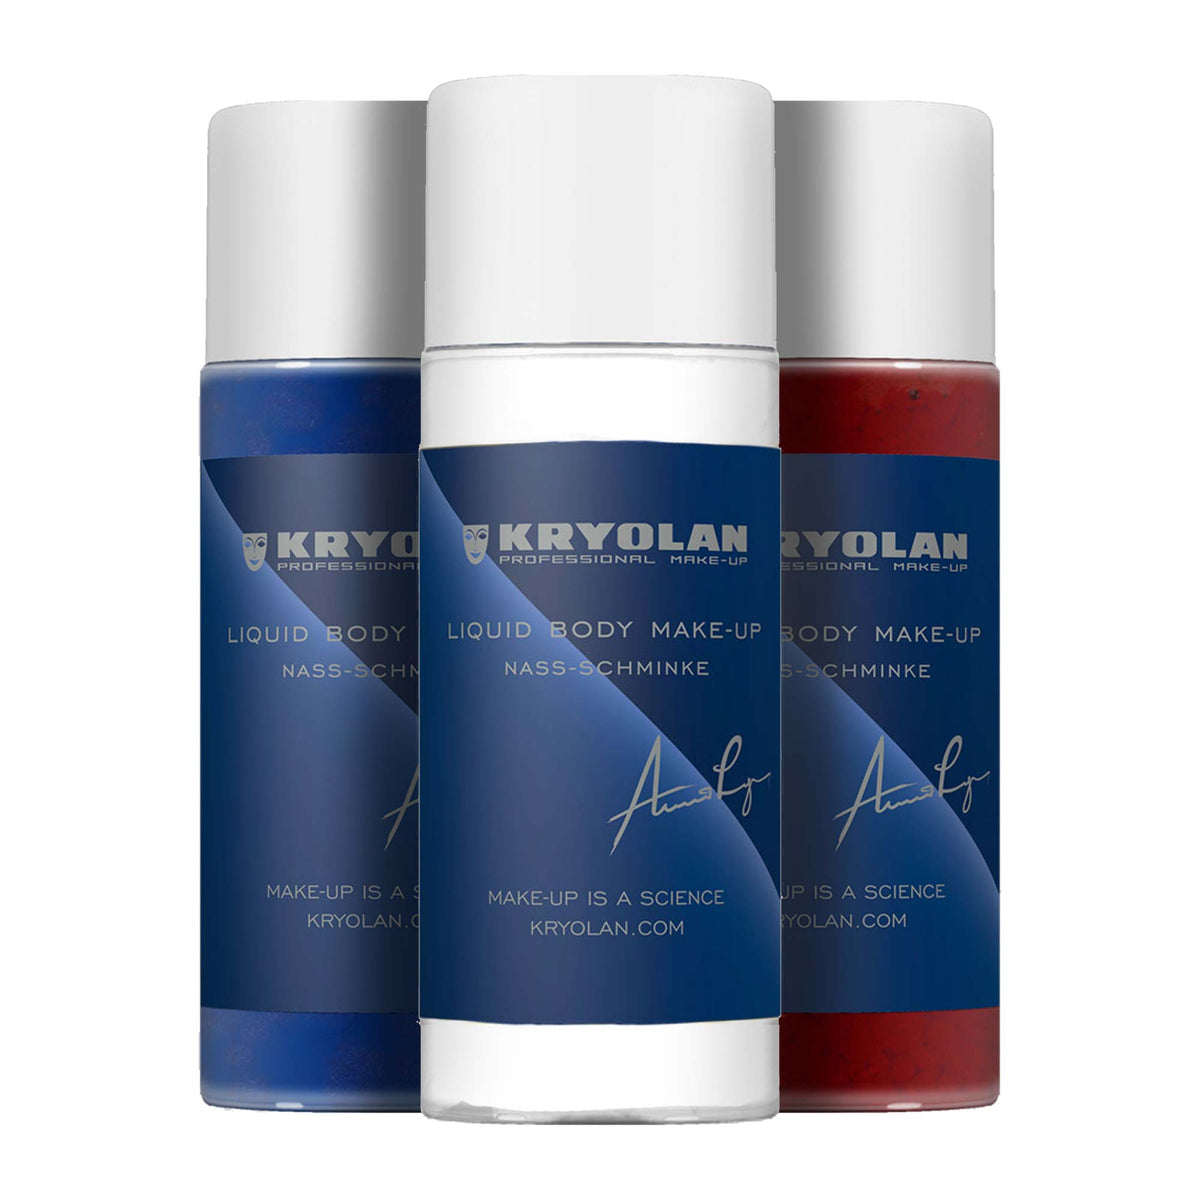 Kryolan Liquid Body Make-Up - Face & Body Paint